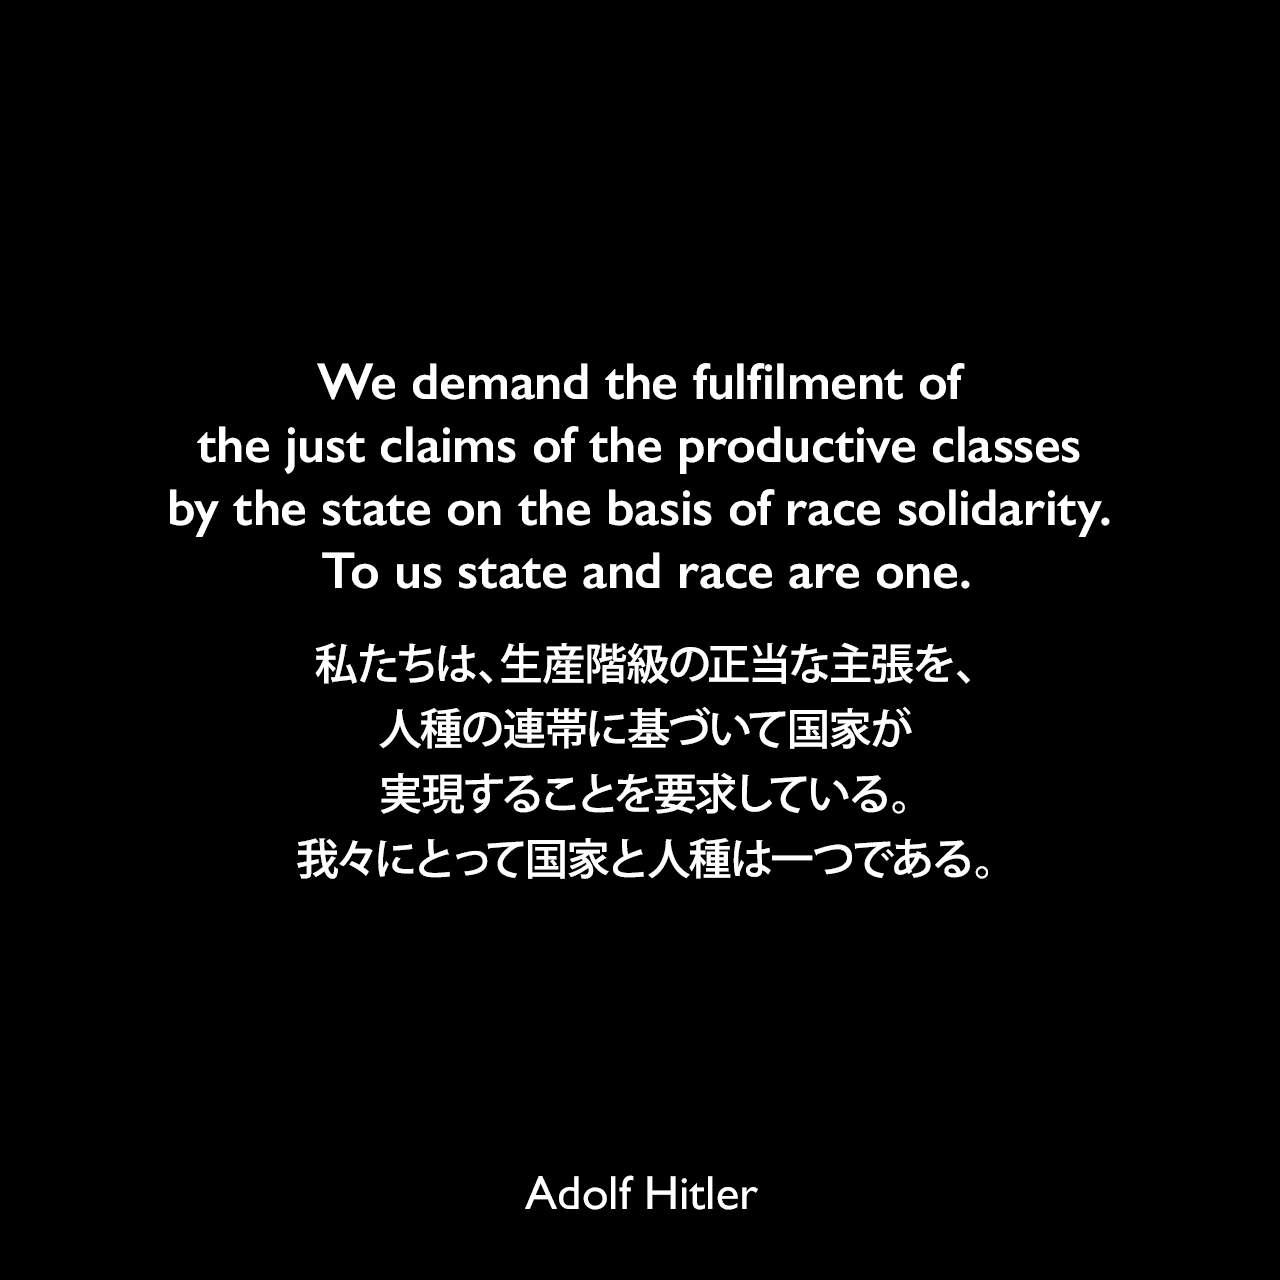 We demand the fulfilment of the just claims of the productive classes by the state on the basis of race solidarity. To us state and race are one.私たちは、生産階級の正当な主張を、人種の連帯に基づいて国家が実現することを要求している。我々にとって国家と人種は一つである。- 1923年 詩人ジョージ・シルヴェスター・ヴィエレックとのインタビューよりAdolf Hitler